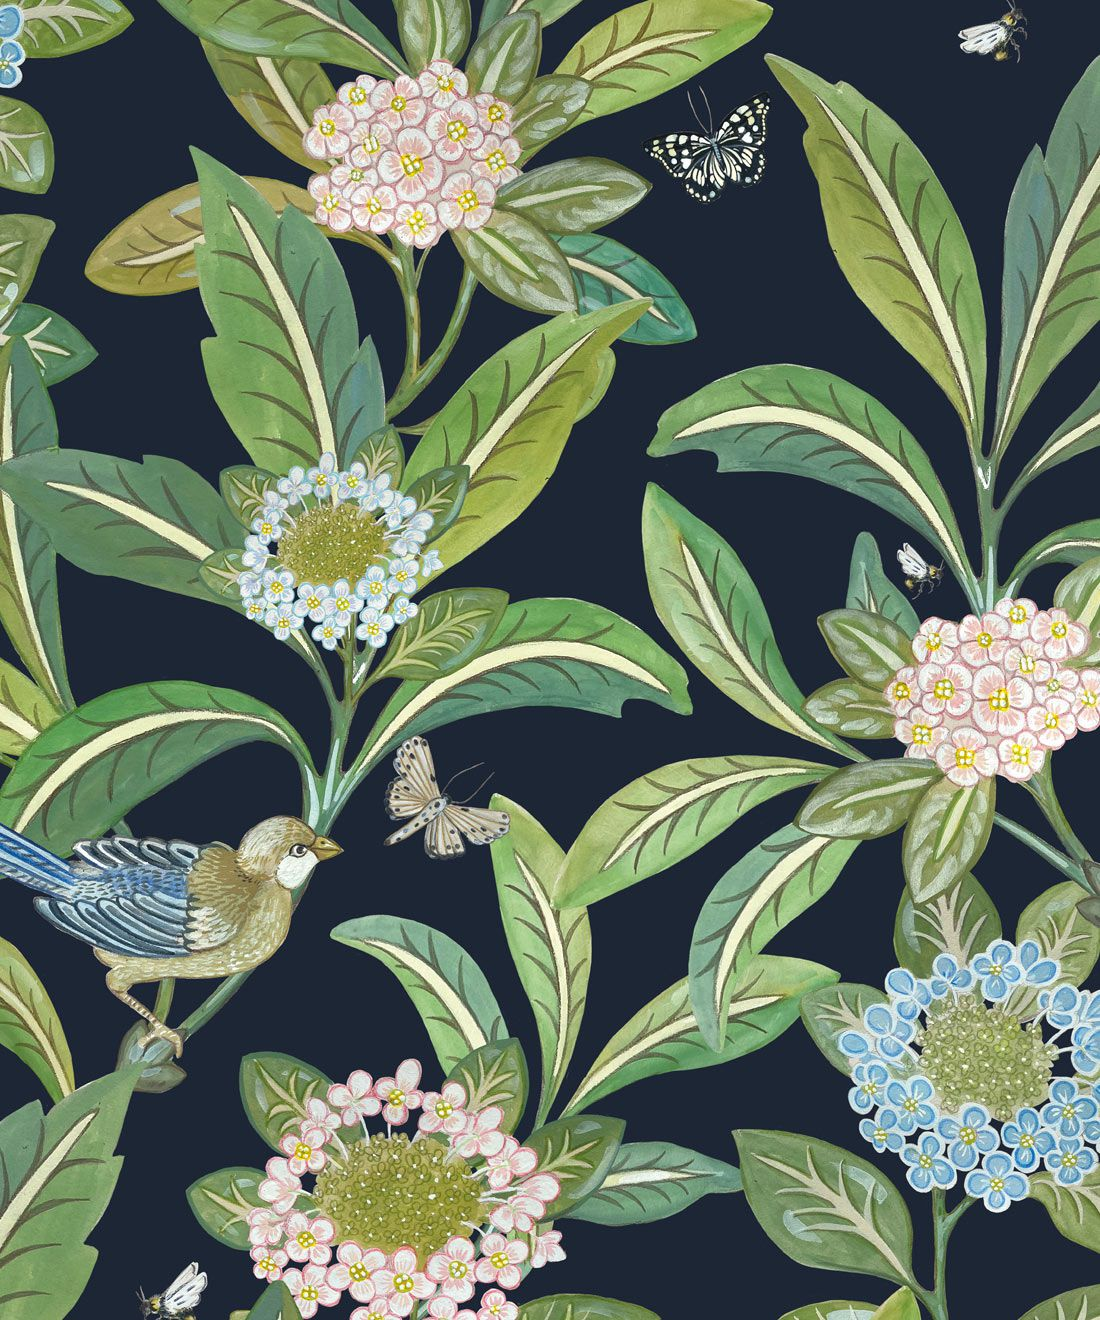 Summer Garden Wallpaper • Original Wallpaper • Floral Wallpaper Swatch